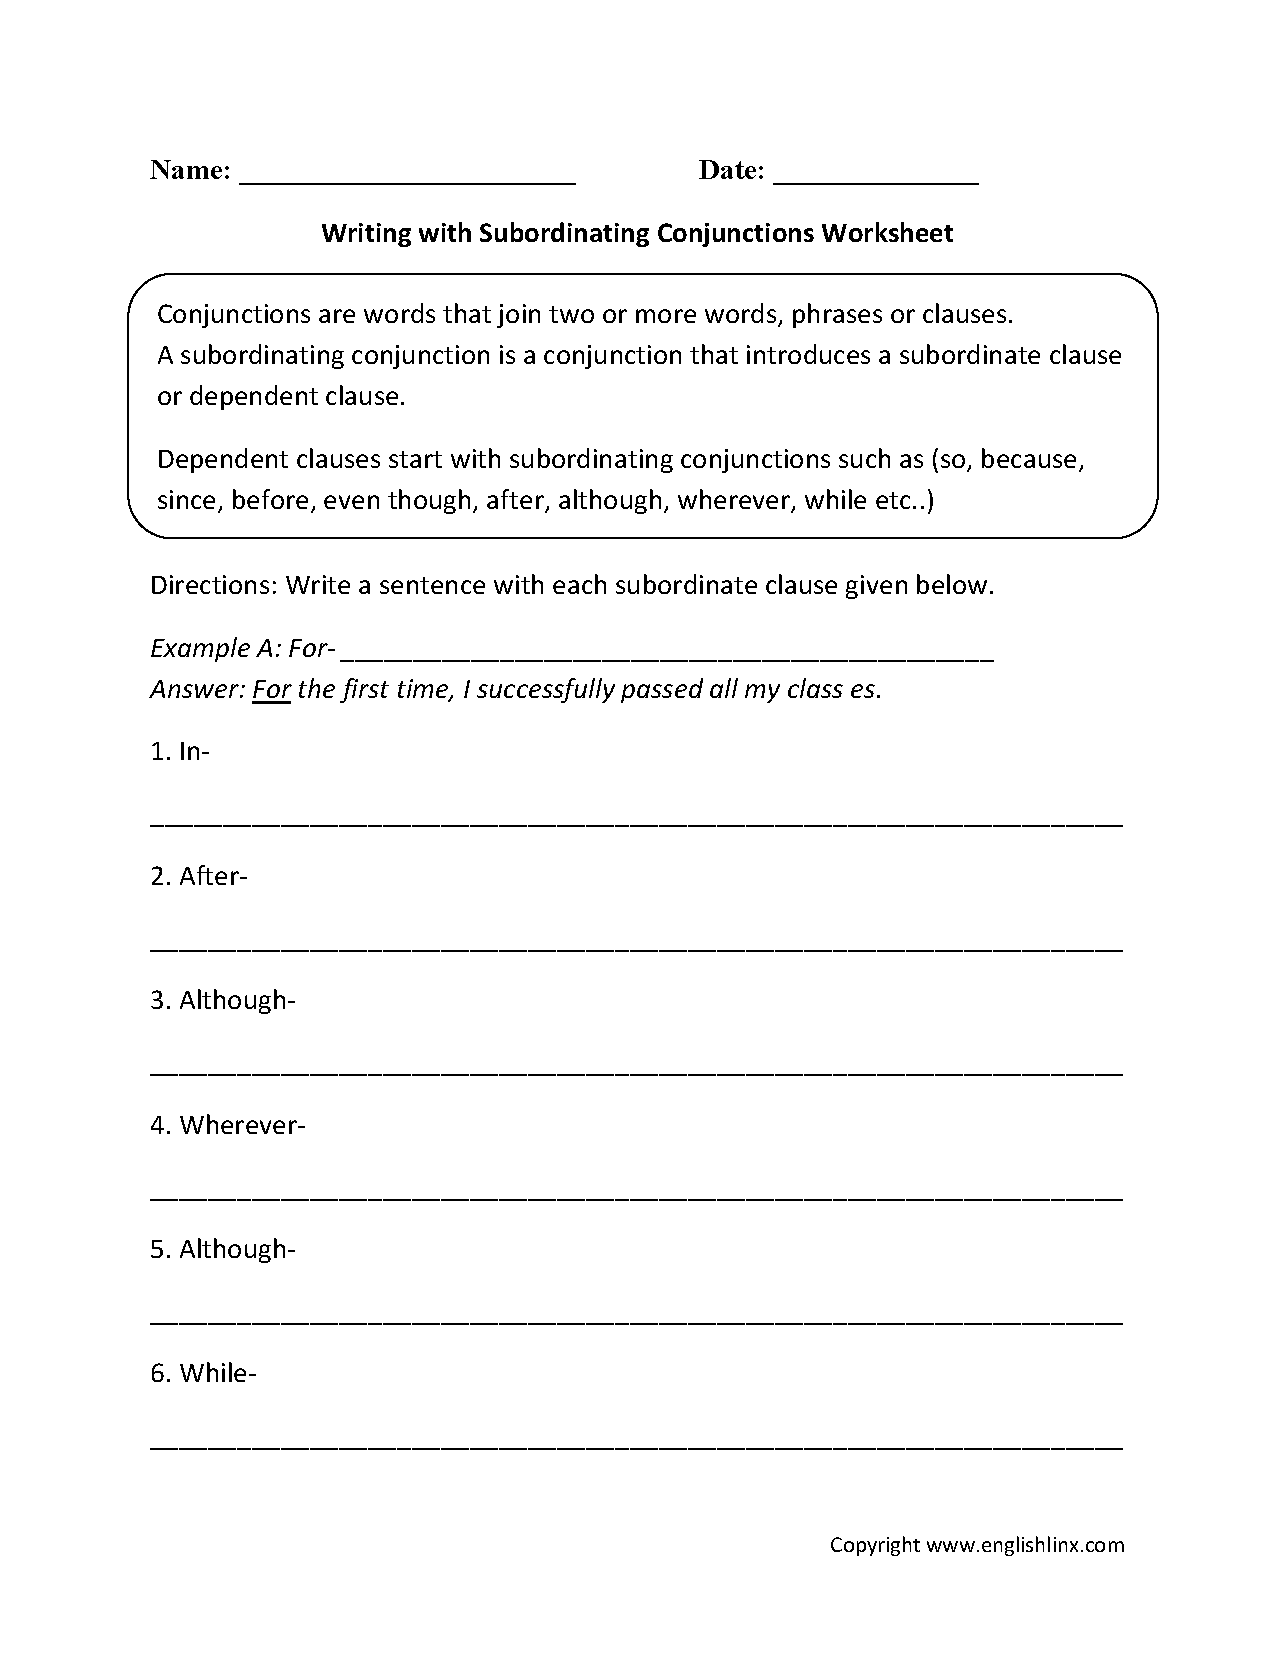 Free Worksheet Conjunction Worksheets englishlinx com conjunctions worksheets subordinating worksheets